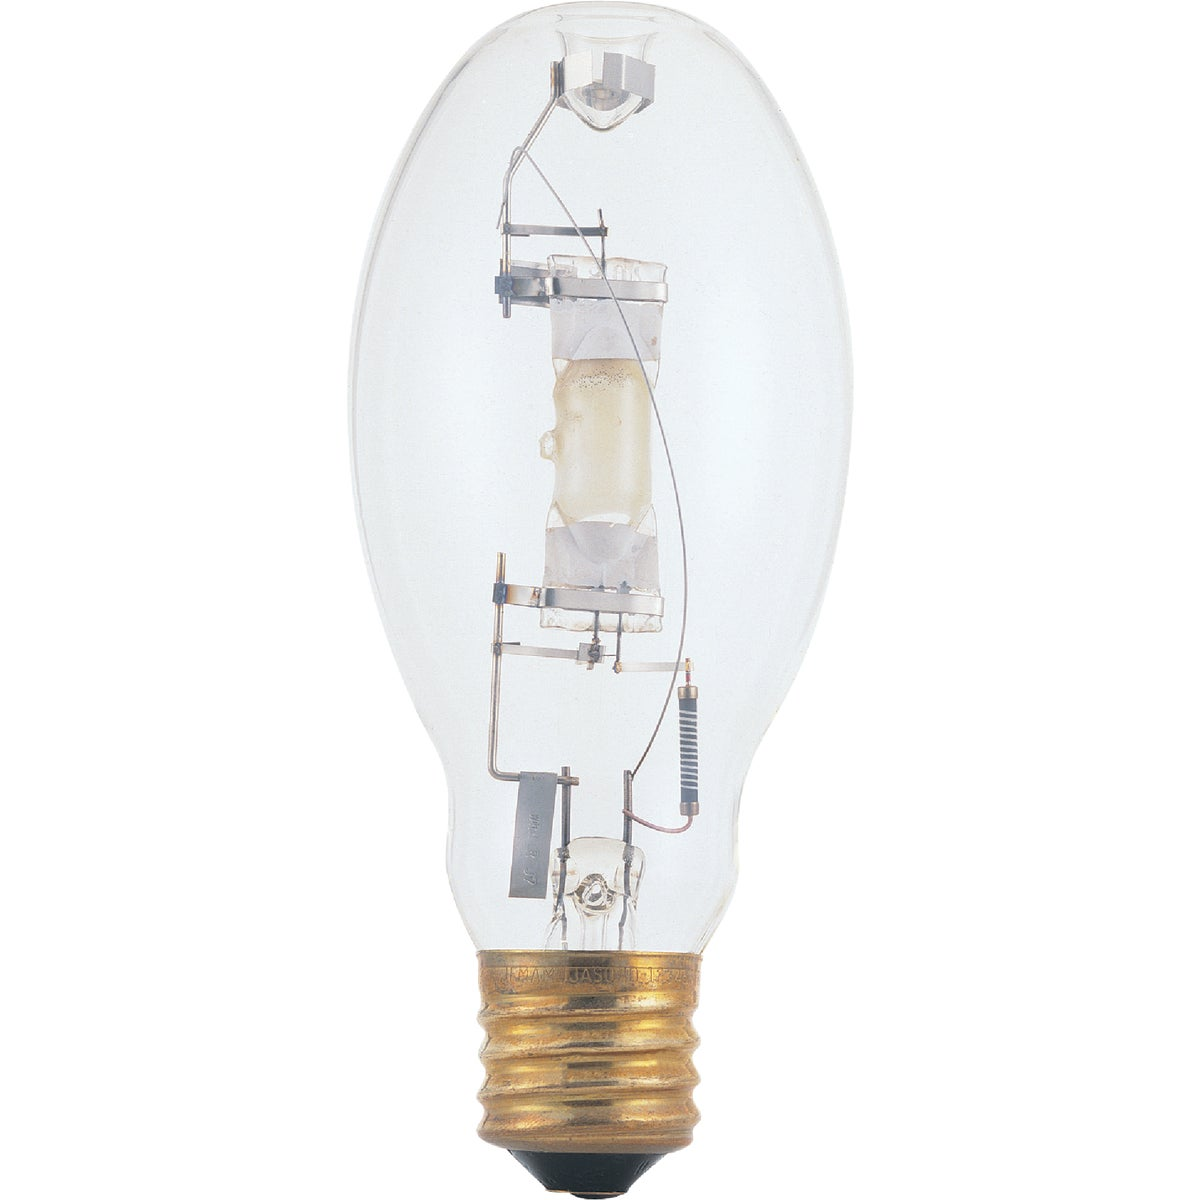 400W METAL HALIDE BULB - 111903 by Wobble Light